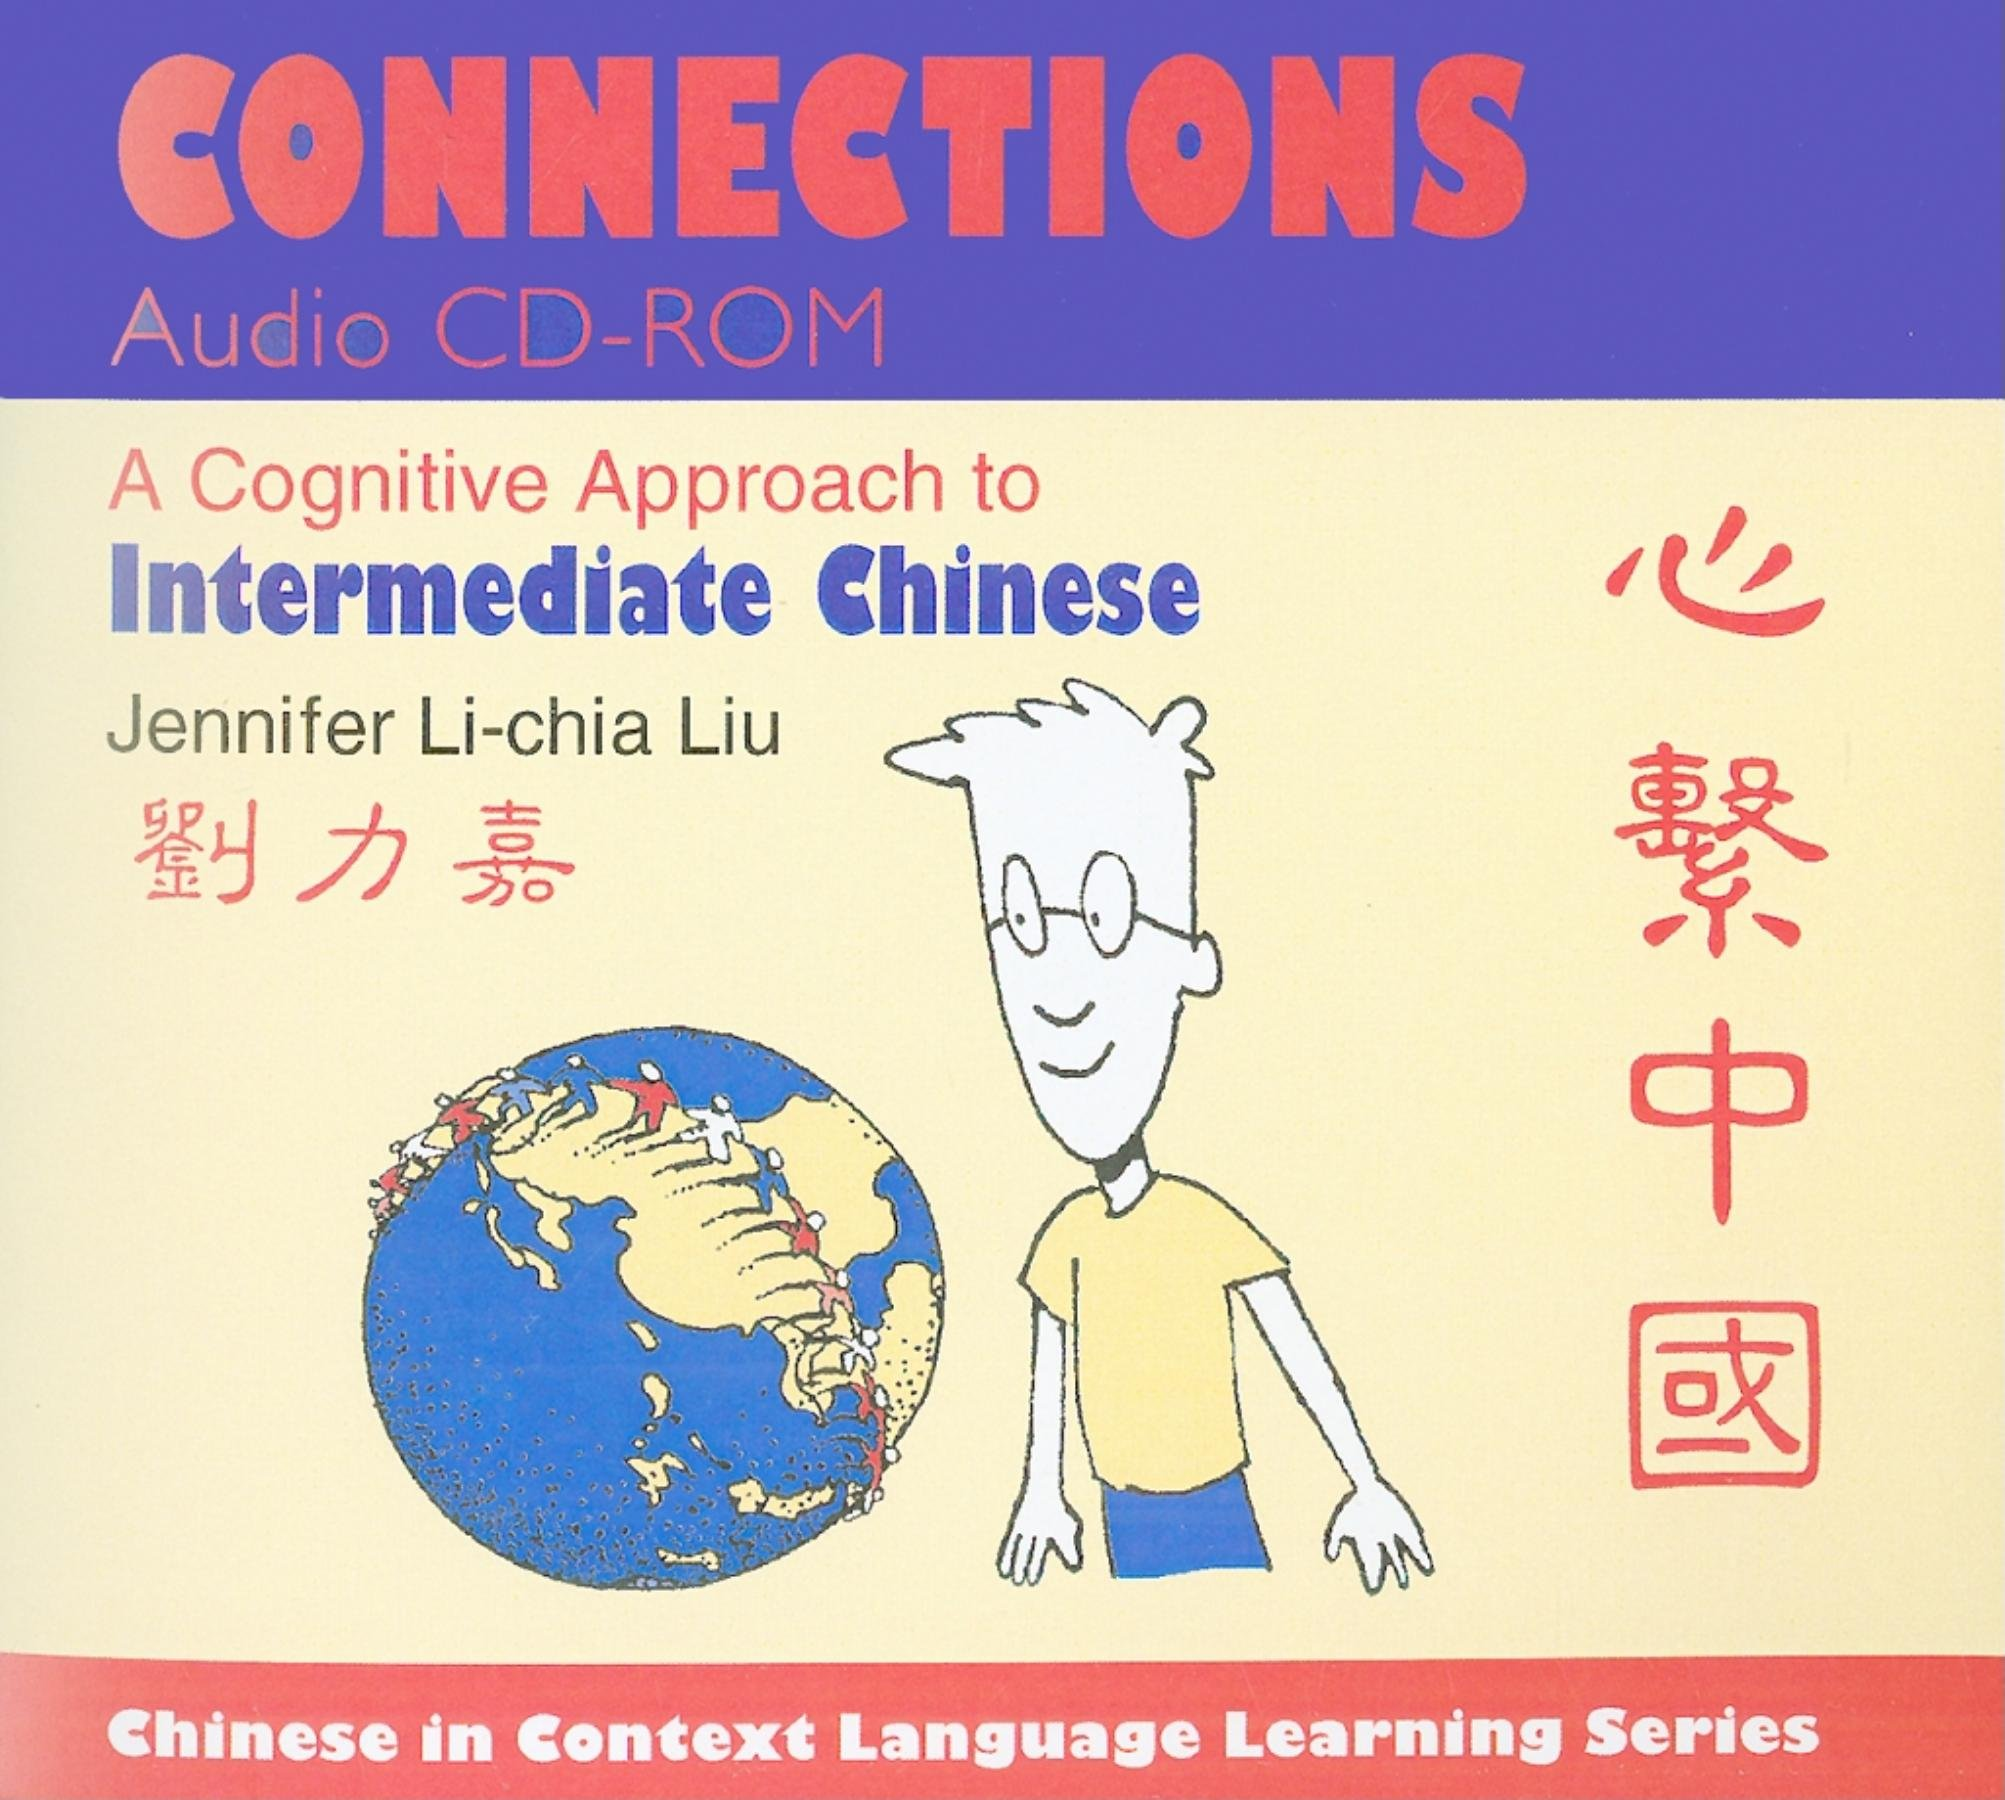 Connections Audio CD-ROM: A Cognitive Approach to Intermediate Chinese (Chinese in Context Language Learning Series)